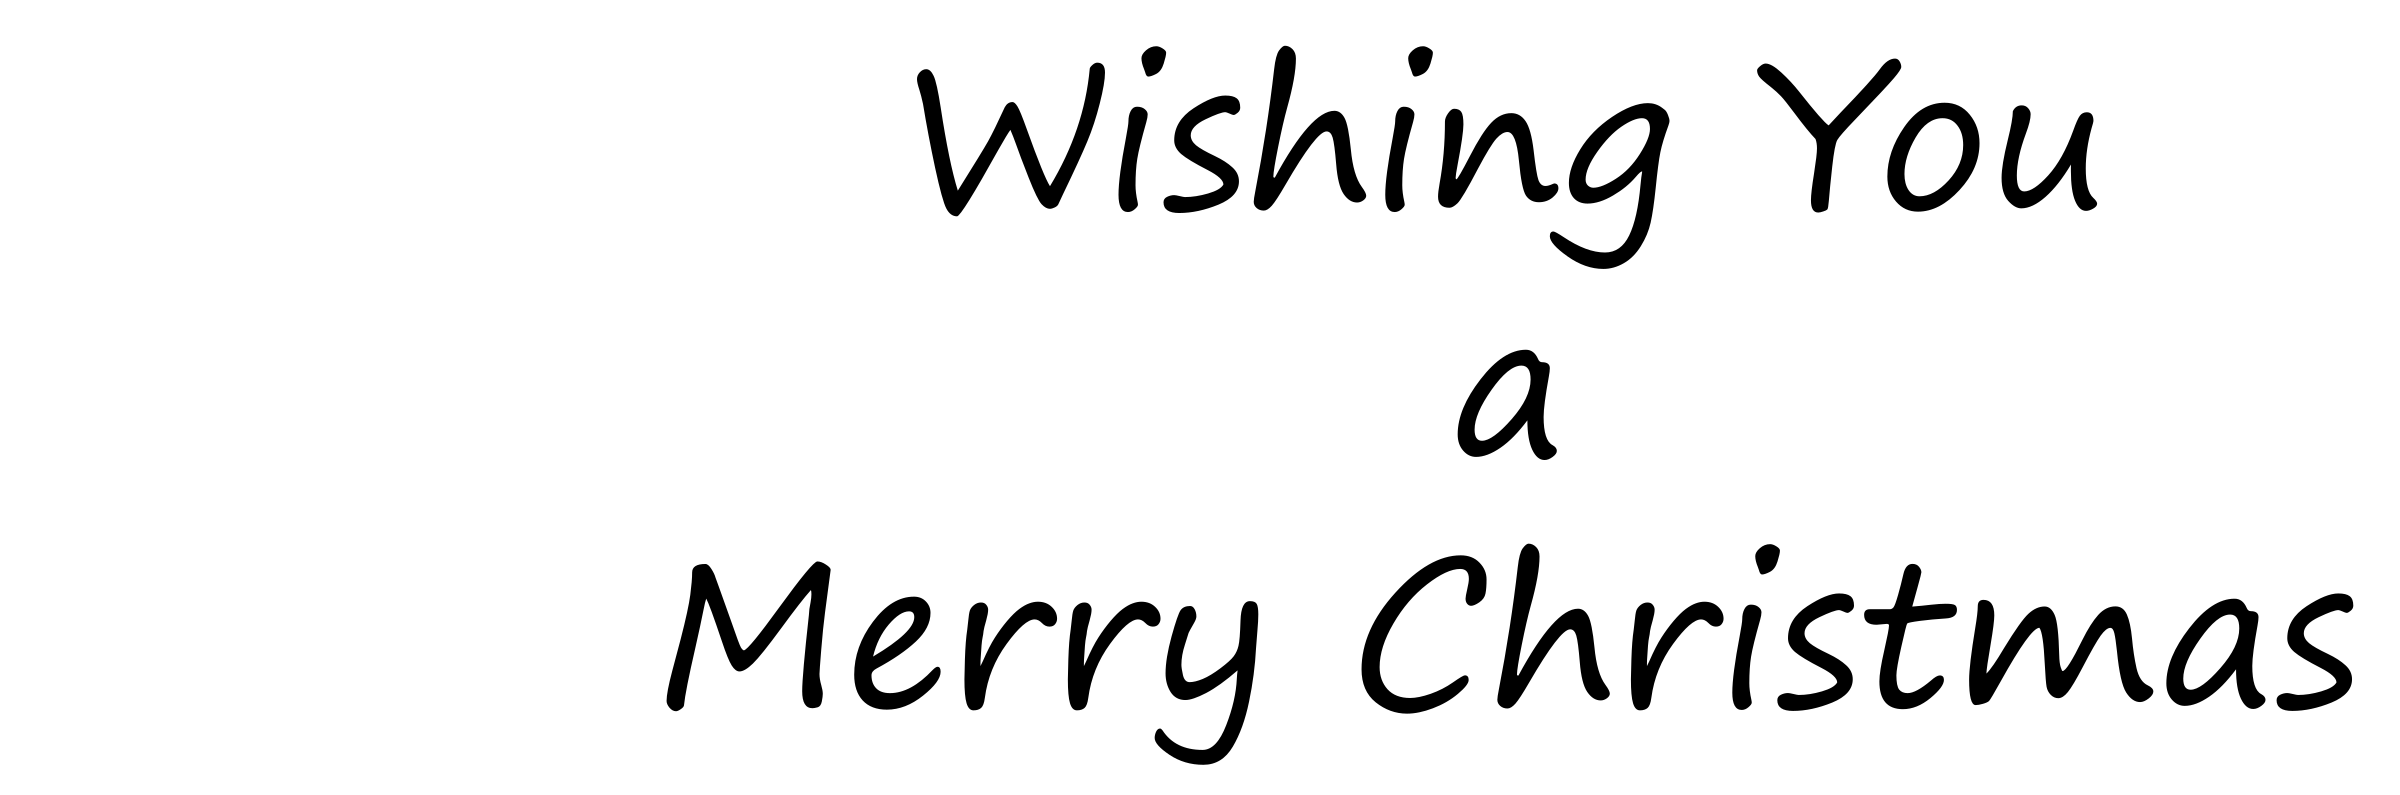 Christmas Greetings by avinesh